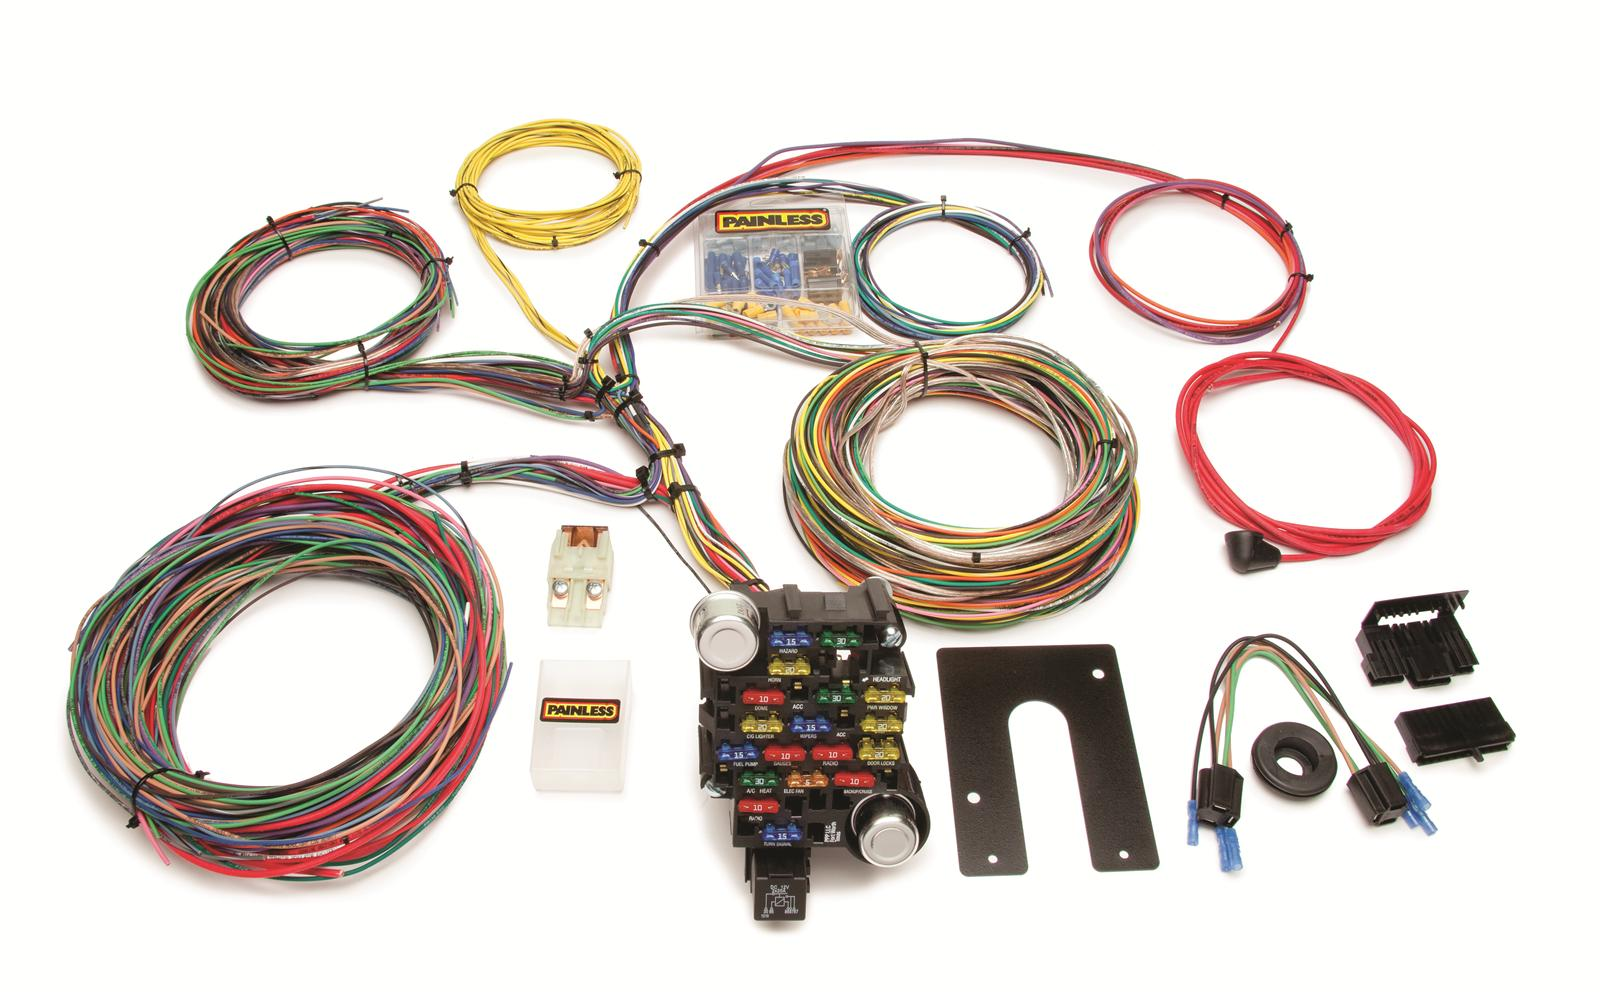 Painless Performance 28 Circuit Universal Harnesses 10202 Free Gm Wiring Harness For Vehicles Shipping On Orders Over 49 At Summit Racing